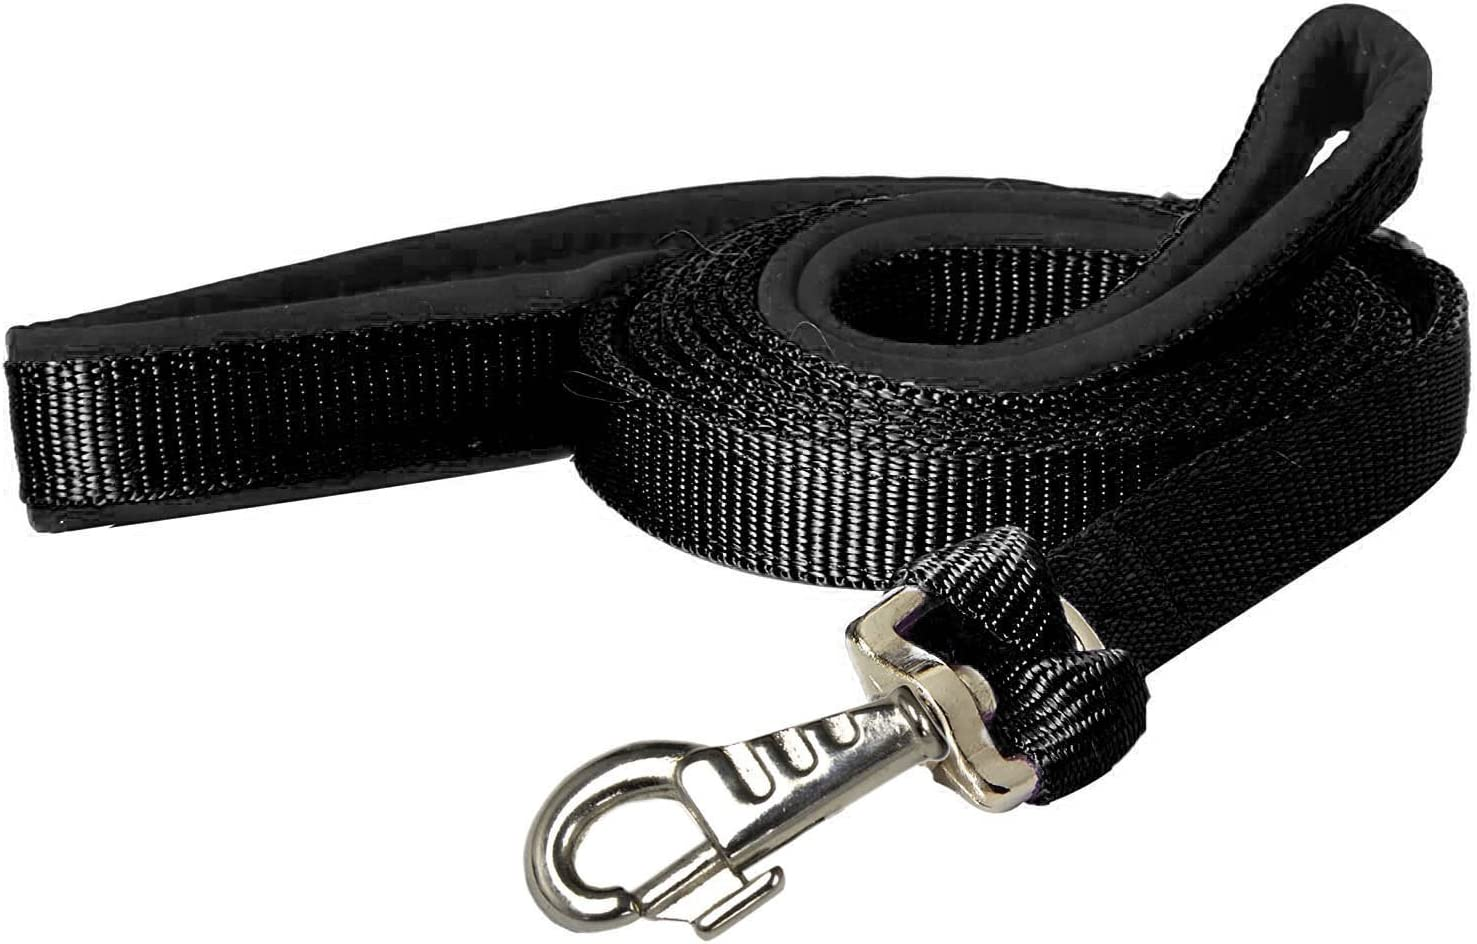 CuteNFuzzy Padded Double Handle Leash with Warranted Replaceable Snap